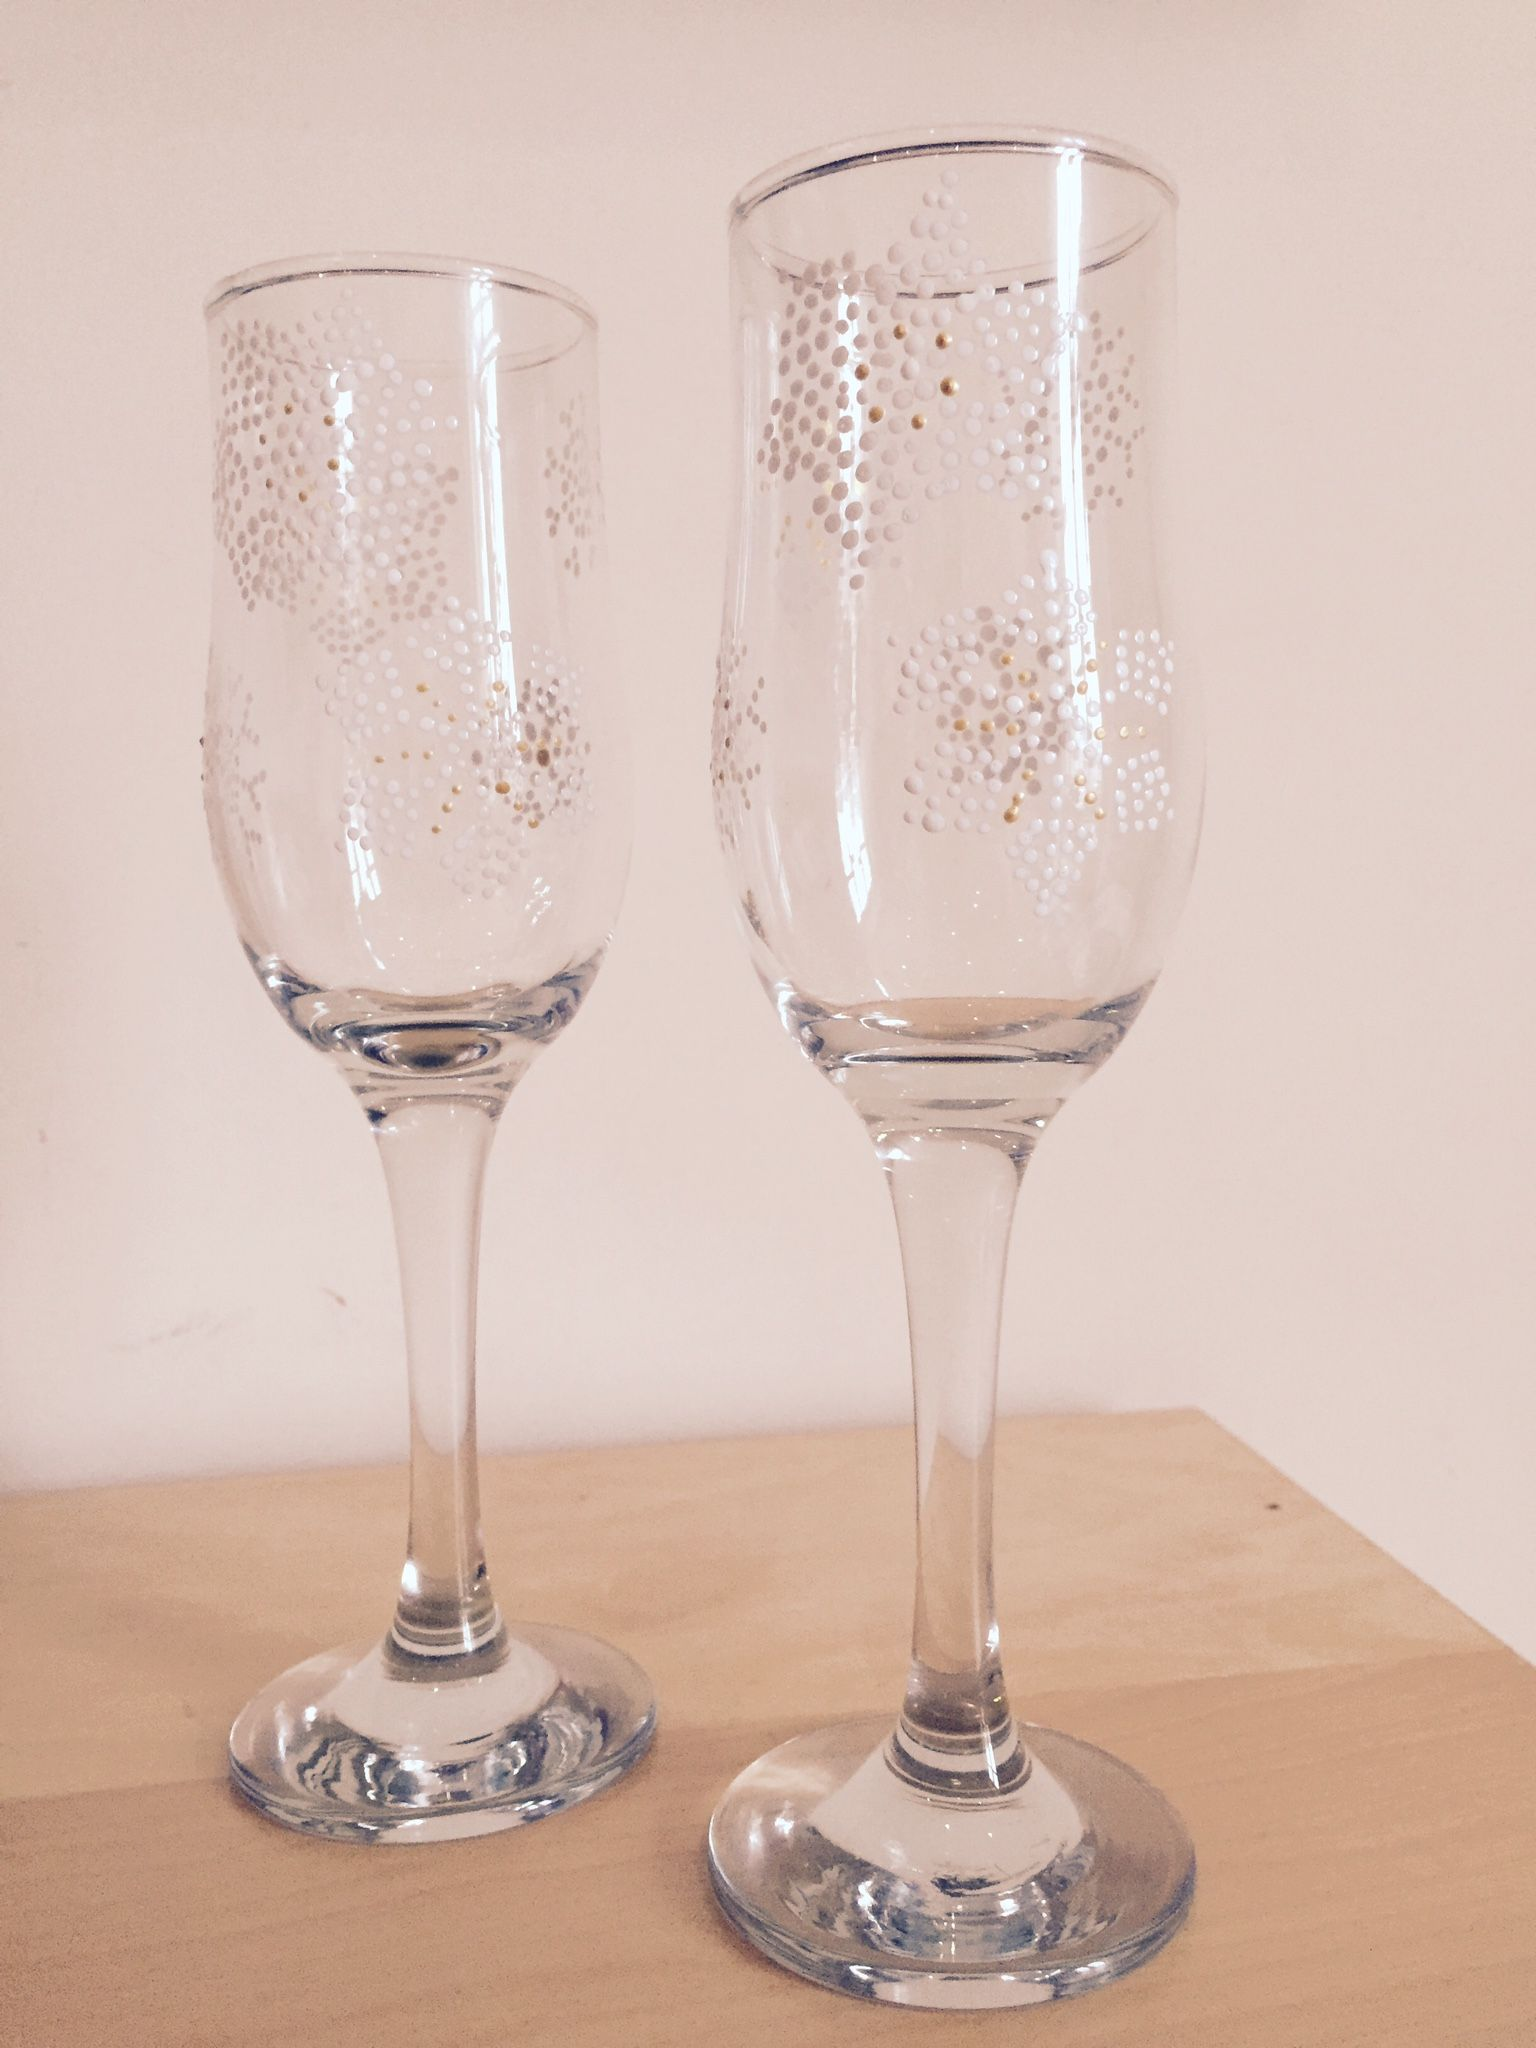 Snowflake champagne glasses for the new year.  They can do any pattern you would like on any shape glass!